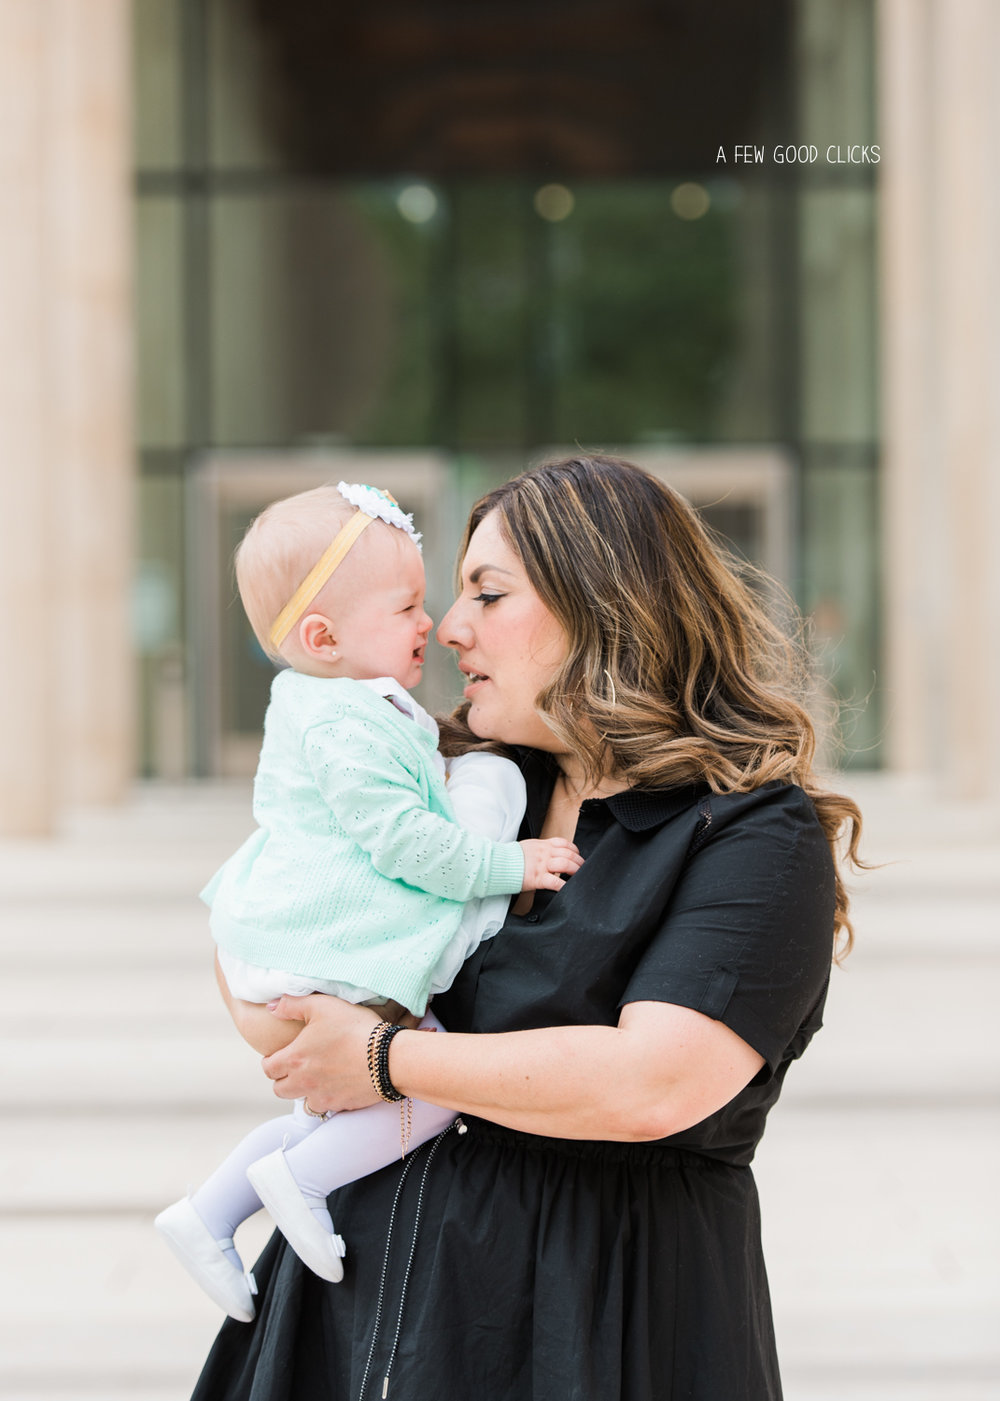 courthouse-adoption-ceremony-photographer-afewgoodclicks